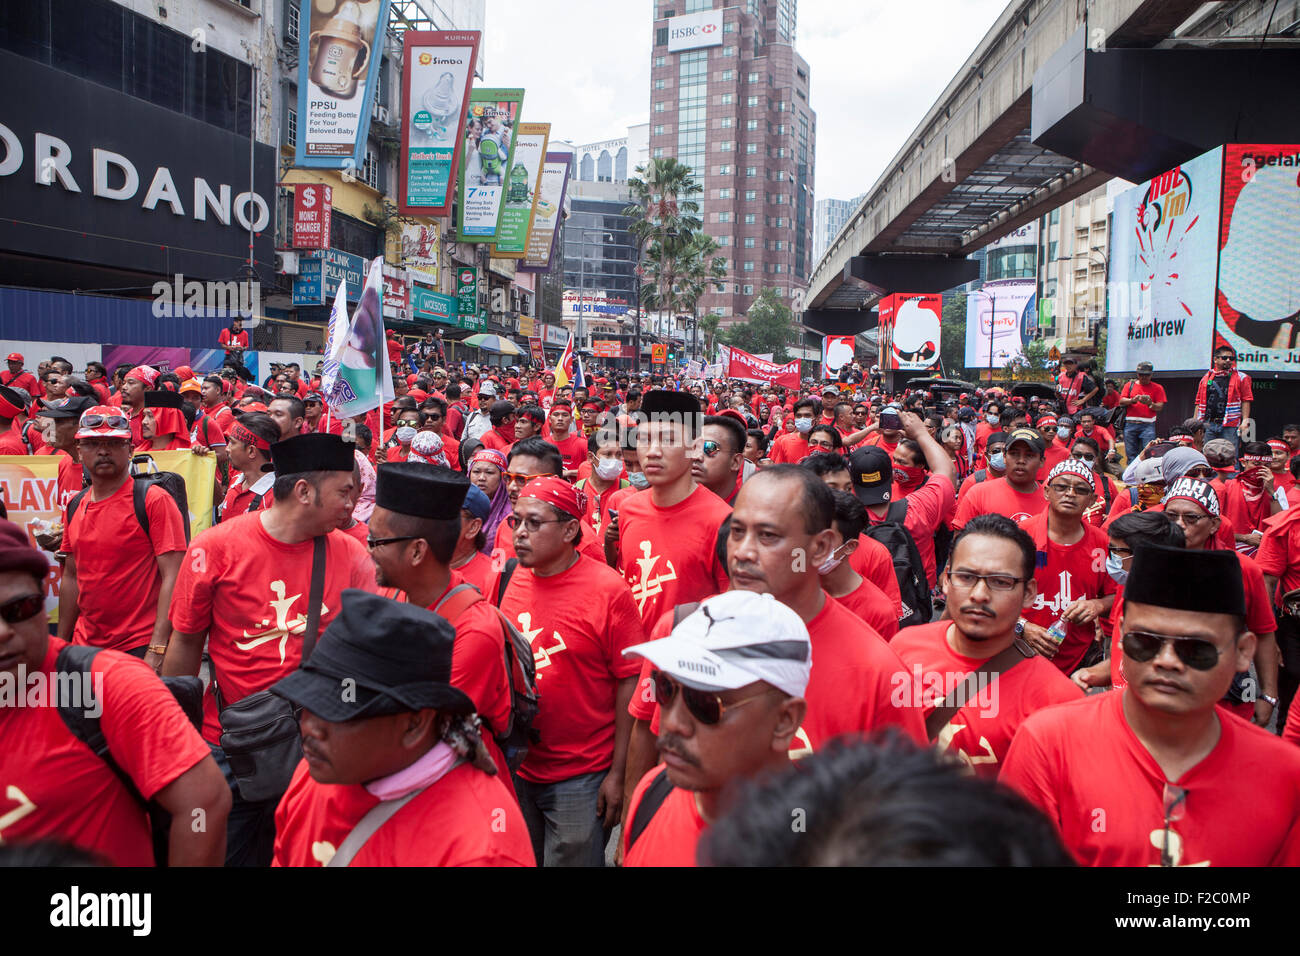 Kuala Lumpur, Malaysia. 16th Sep, 2015. Pro-government red shirt protesters take part in a demonstration in Kuala - Stock Image